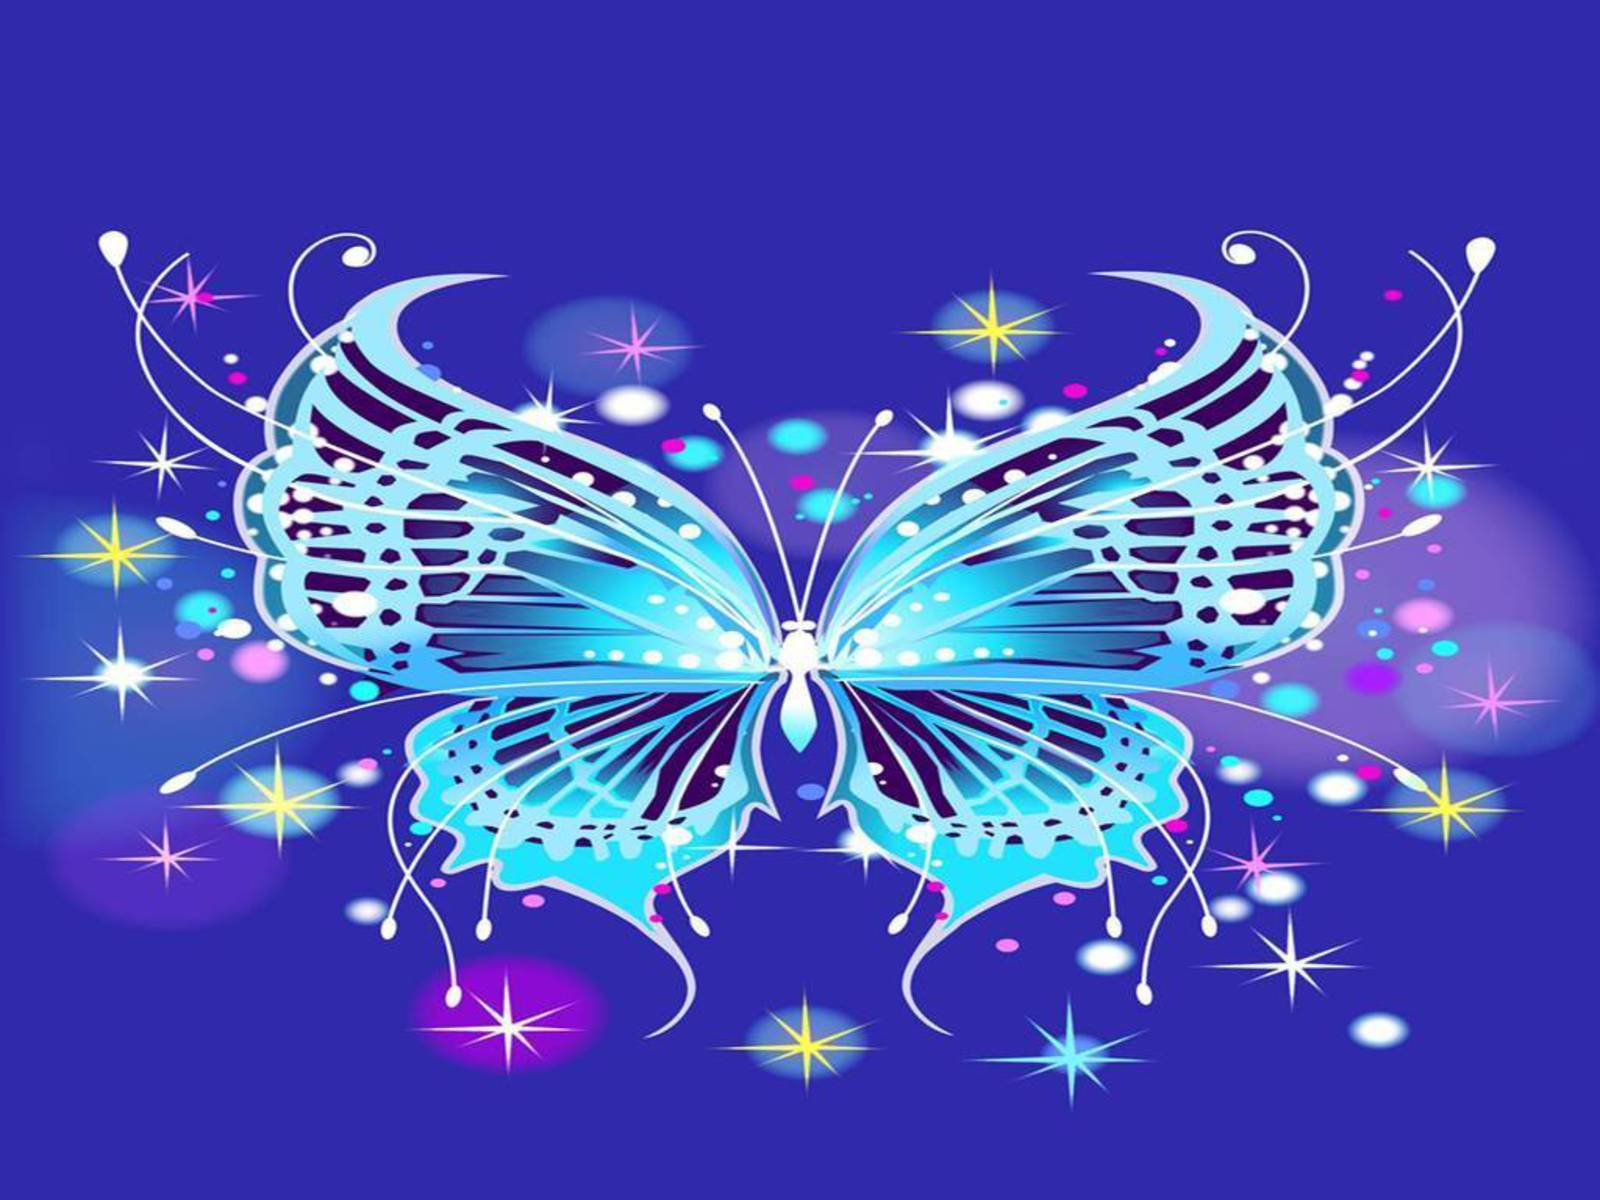 Butterflies images Beautiful Butterflies HD wallpaper and background